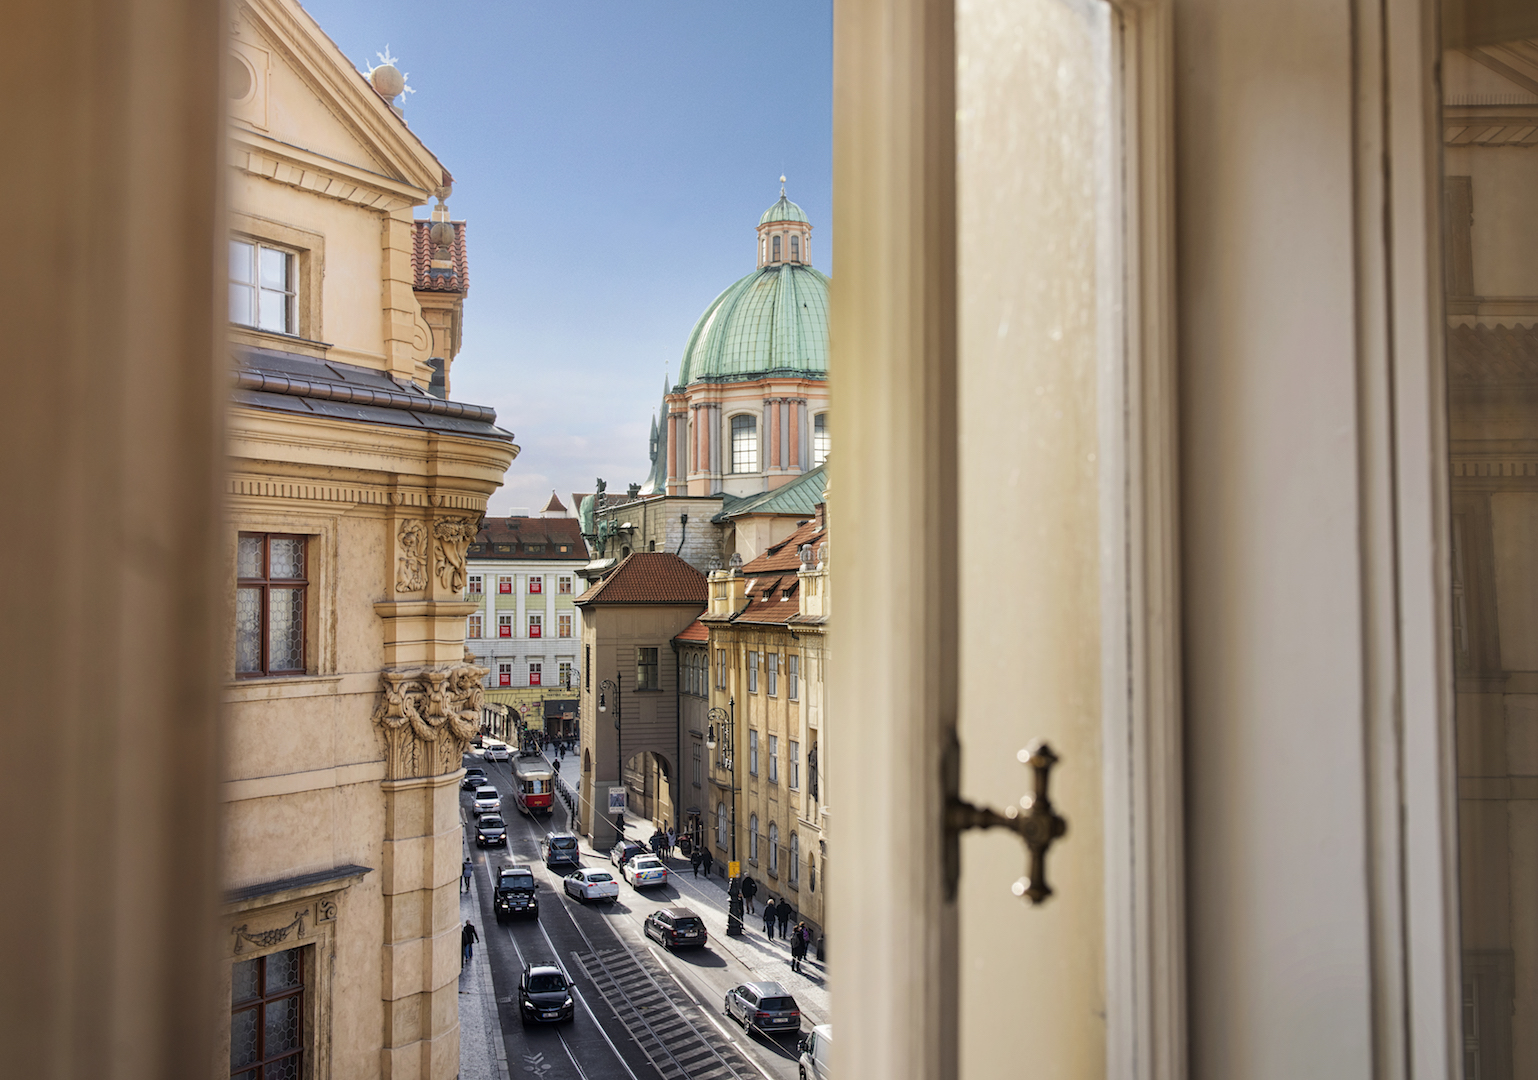 Apartment for Sale at Old Town Apartment in an Attractive City Center Platnerska 7 Prague, Prague, 11000 Czech Republic